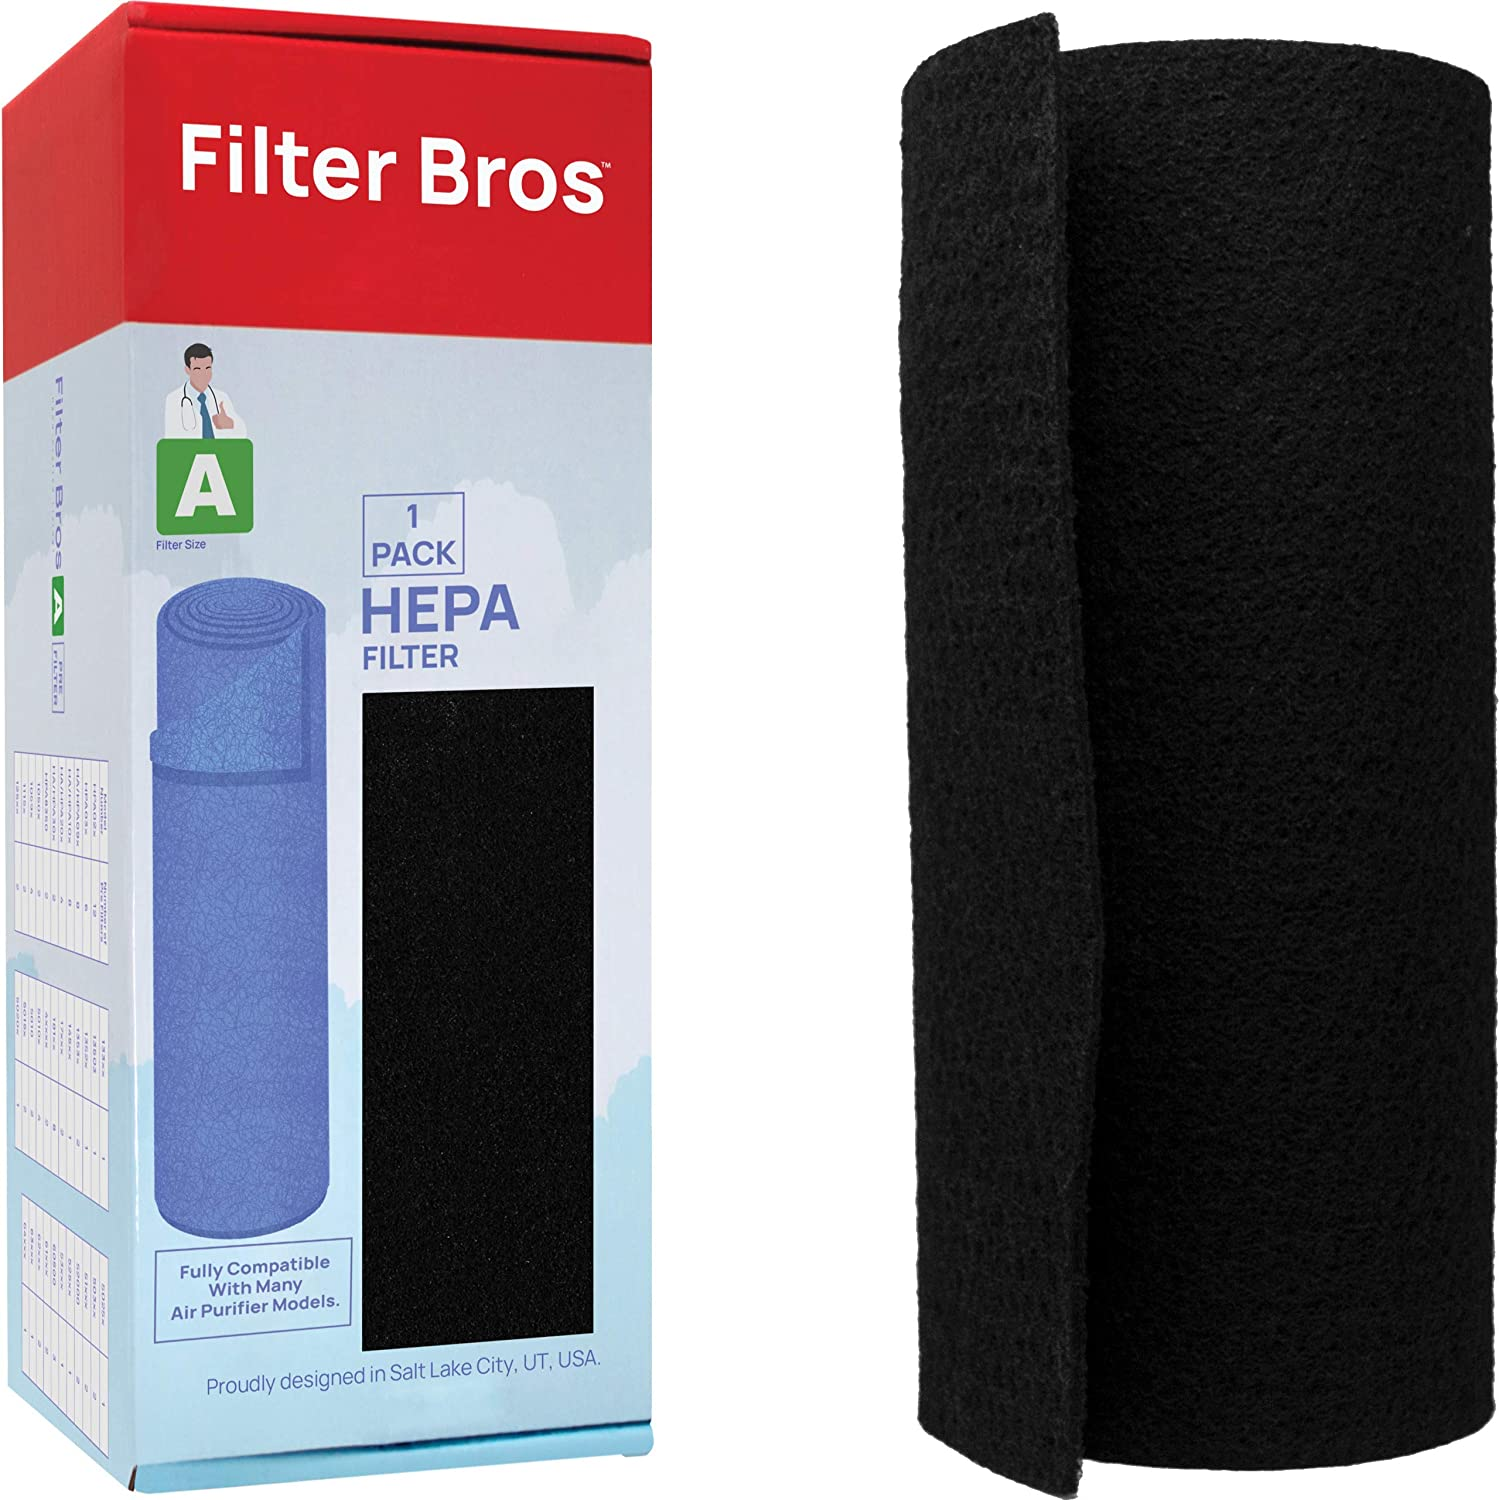 HRF-APP1 Honeywell Compatible Universal Activated Carbon Pre Filter HPA 090/100 / 200/250 / 300 Series Compatible/Customizable Replacement Pre Filter